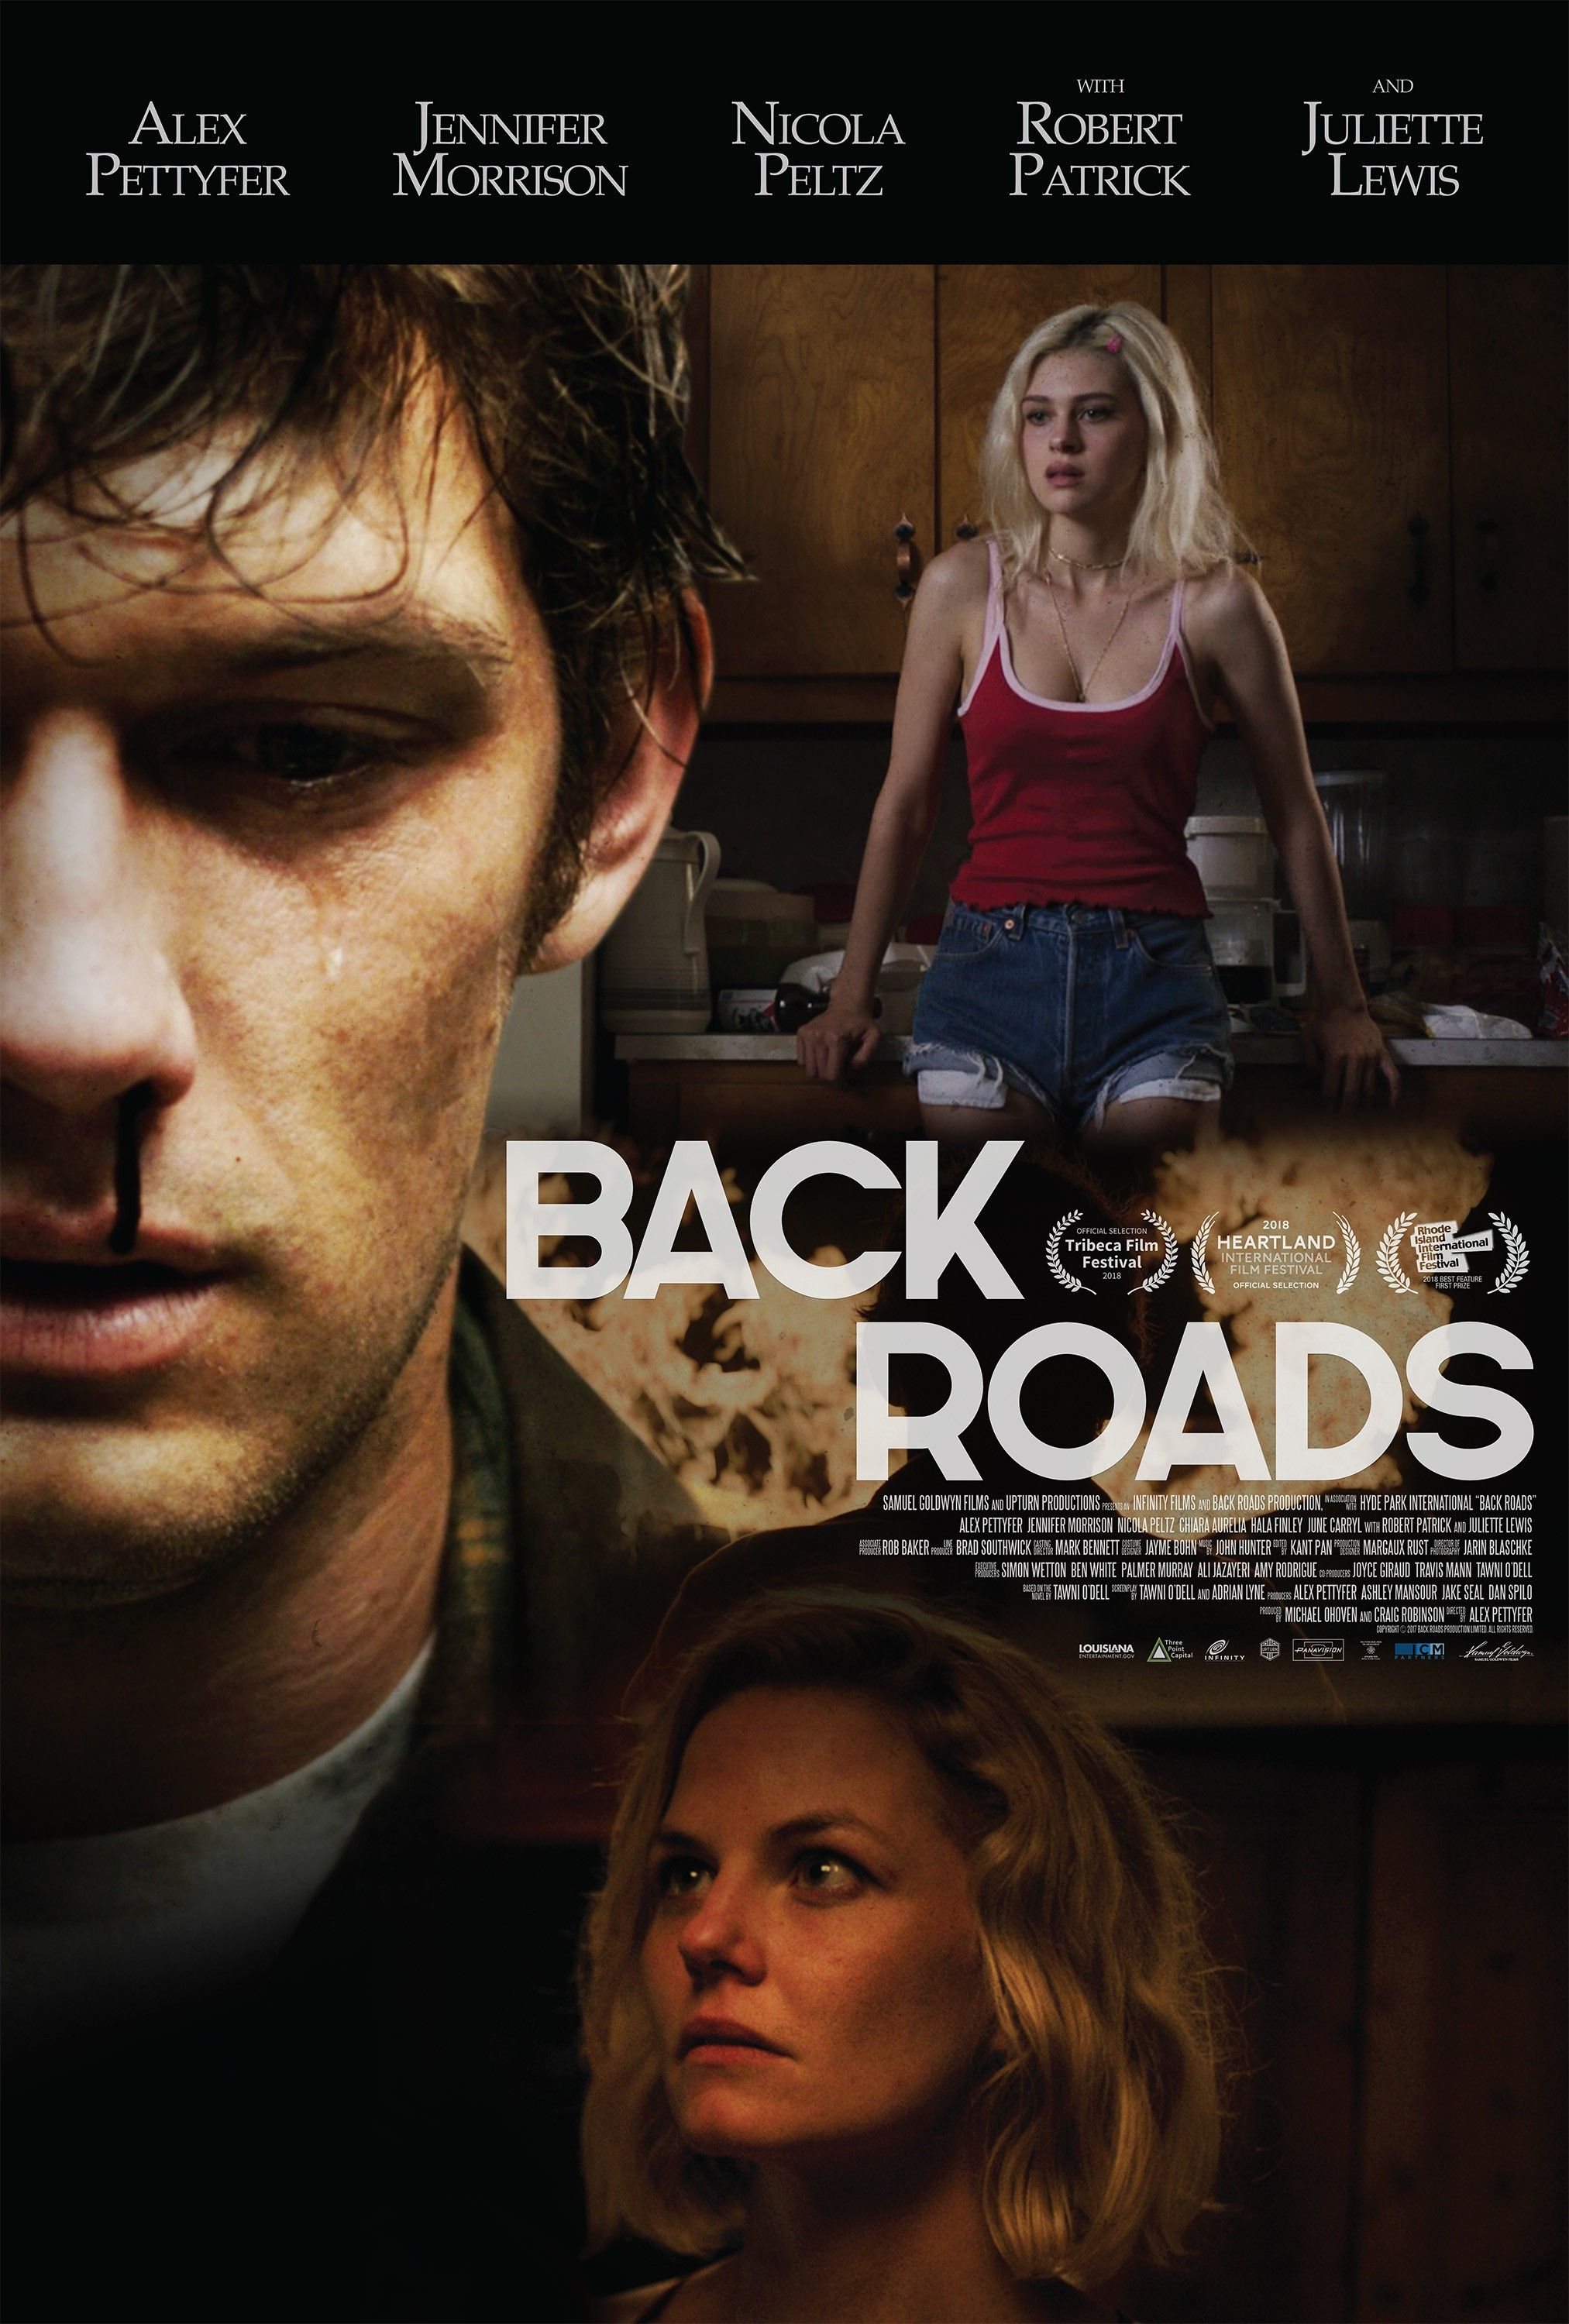 Back Roads Turkce Altyazili Izle Hd Izle 2 Jennifer Morrison Film Alex Pettyfer